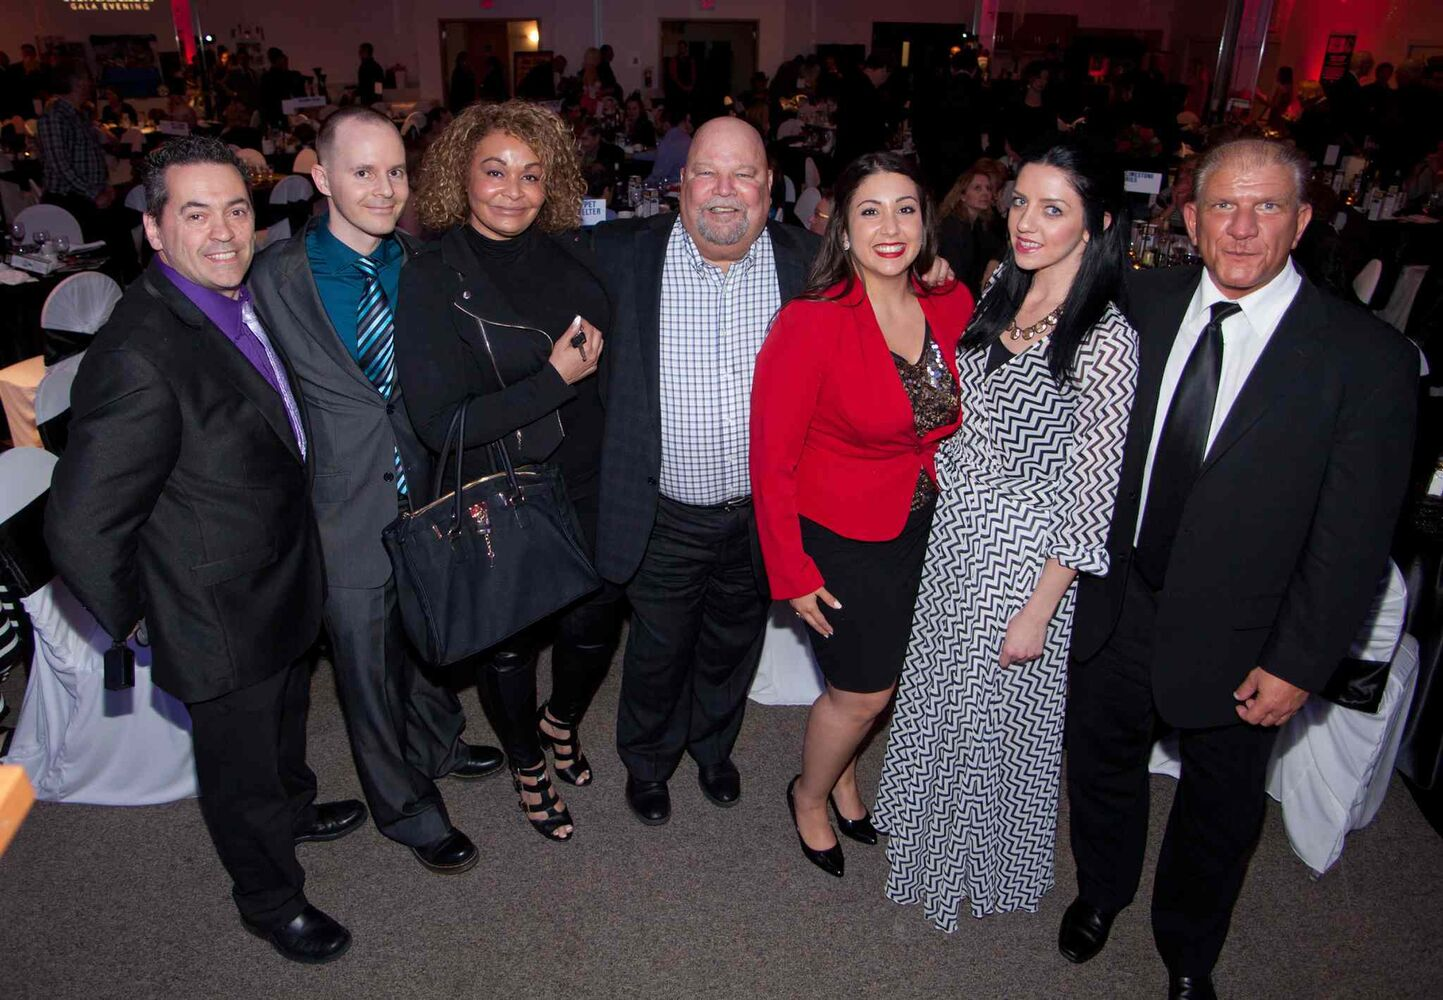 The Winnipeg Pet Rescue Shelter held its annual fundraiser gala dinner at the Gates on Roblin on May 14, 2015. The New York-themed event raised much-needed funds for the no-kill pet shelter. Representing Energy 106 were Frankie Hollywood (from left), Steve Adams, Jordan Knight, Mike Fabian, Nichole Dacey, Stephanie Harris and Todd Denysuik.